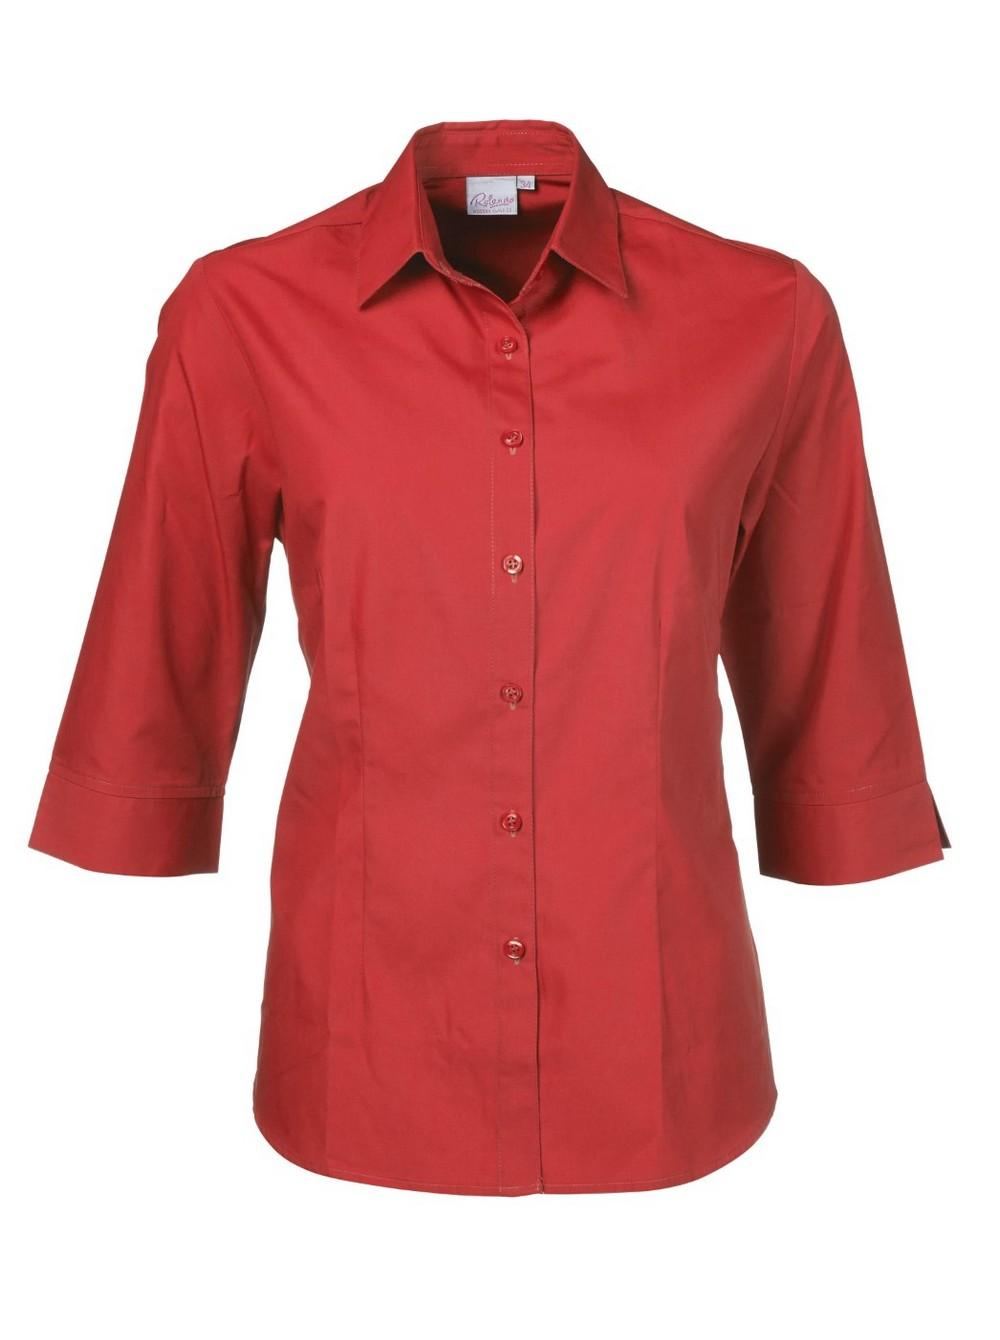 Cathy P070 3/4 Blouse - Red